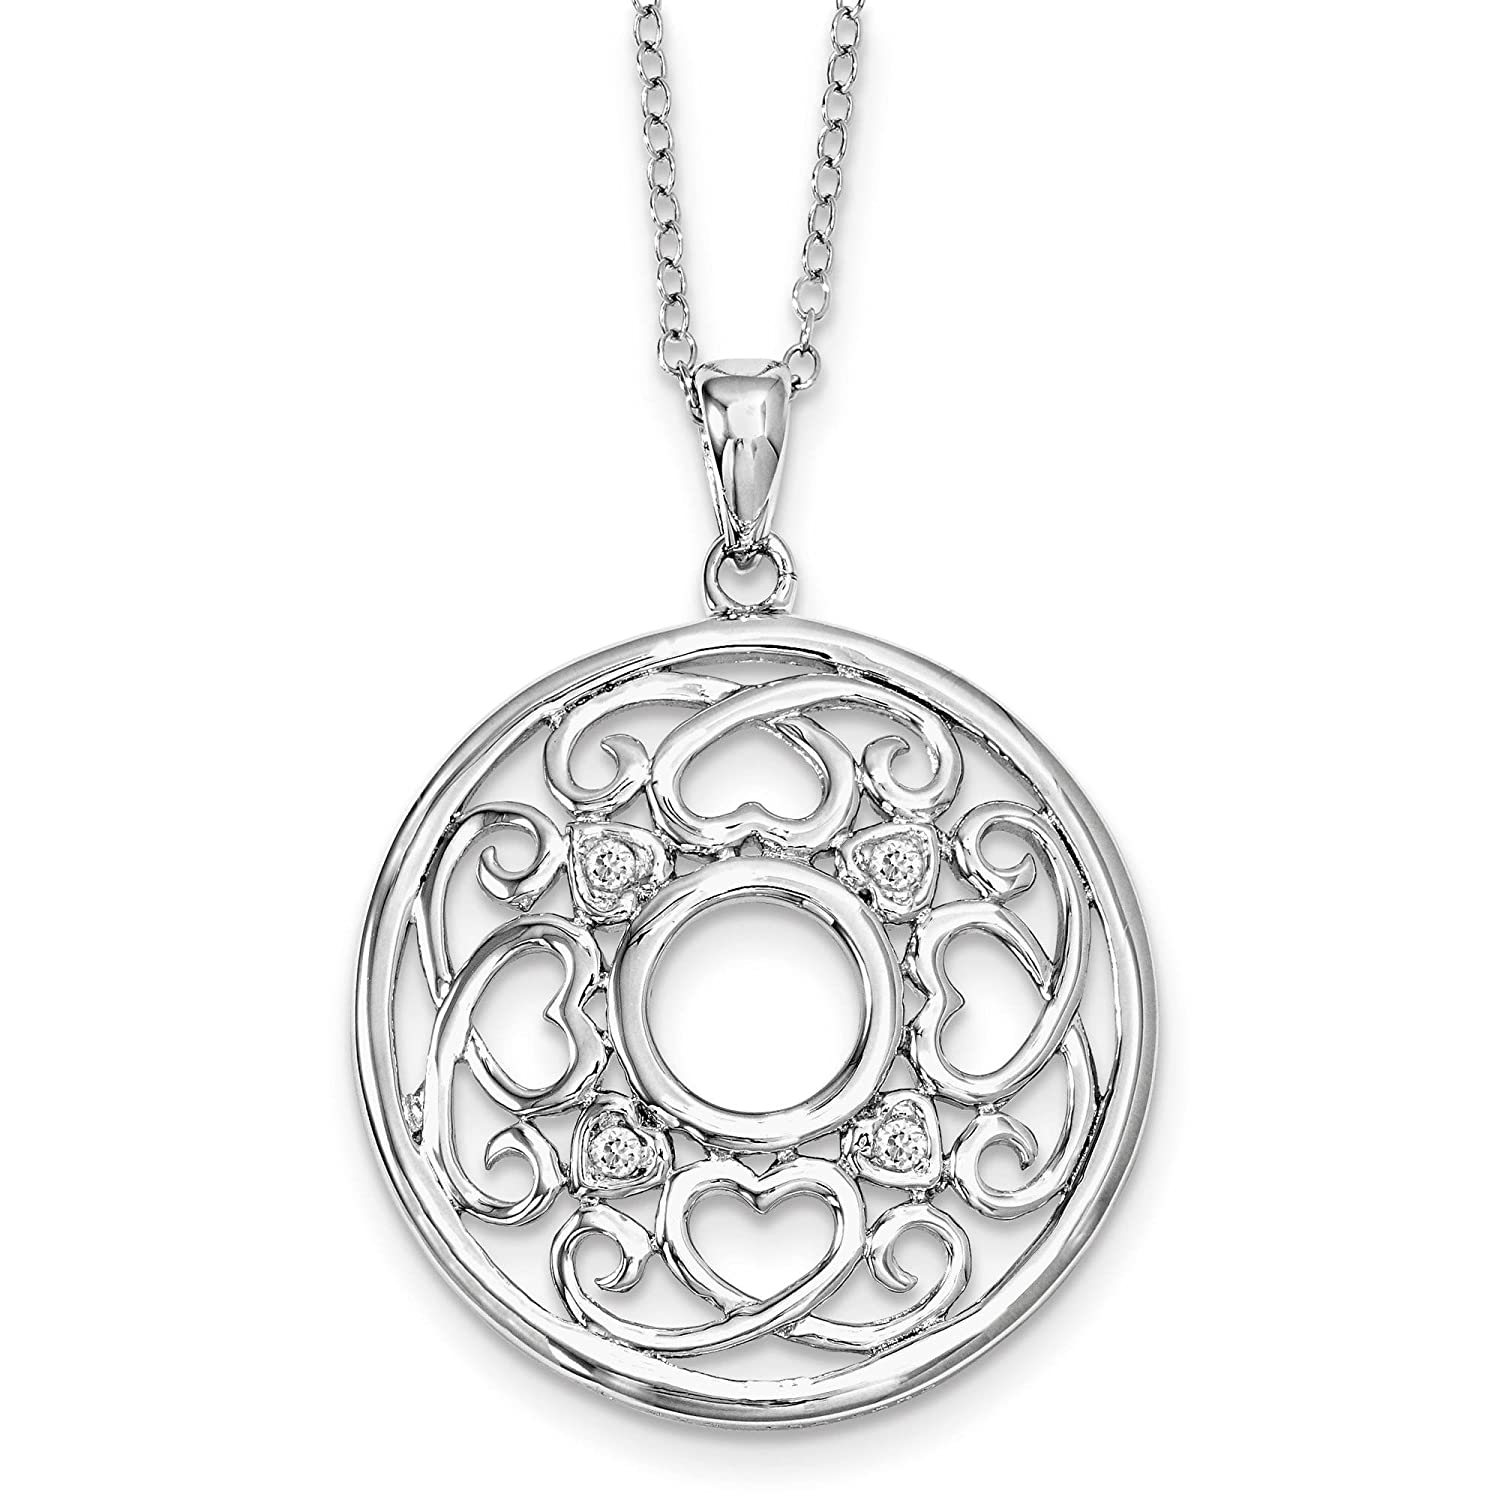 Sterling Silver Polished CZ Wisdom Of Friendship Circle Pendant Necklace 18 by Sentimental Expressions